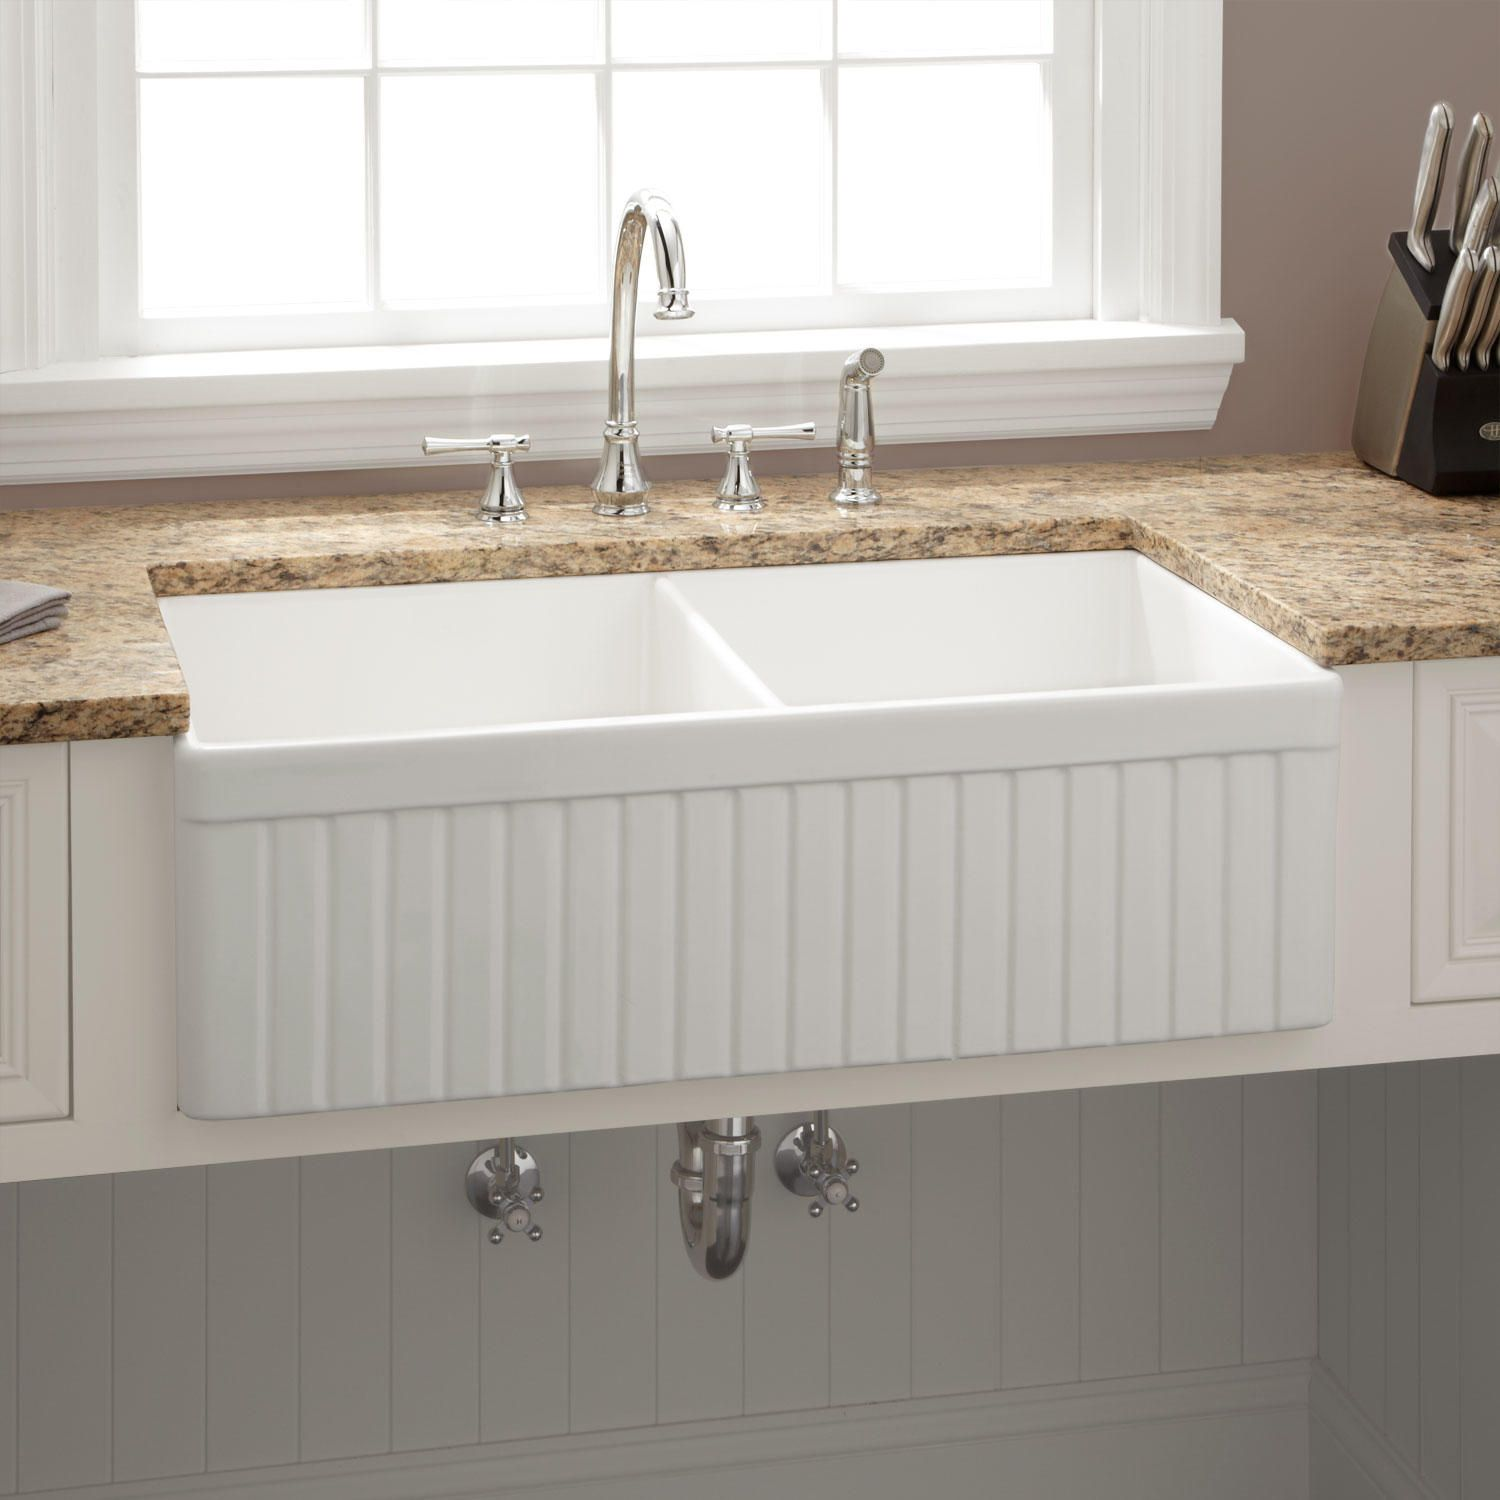 33 Northing Double Bowl Fireclay Farmhouse Sink White